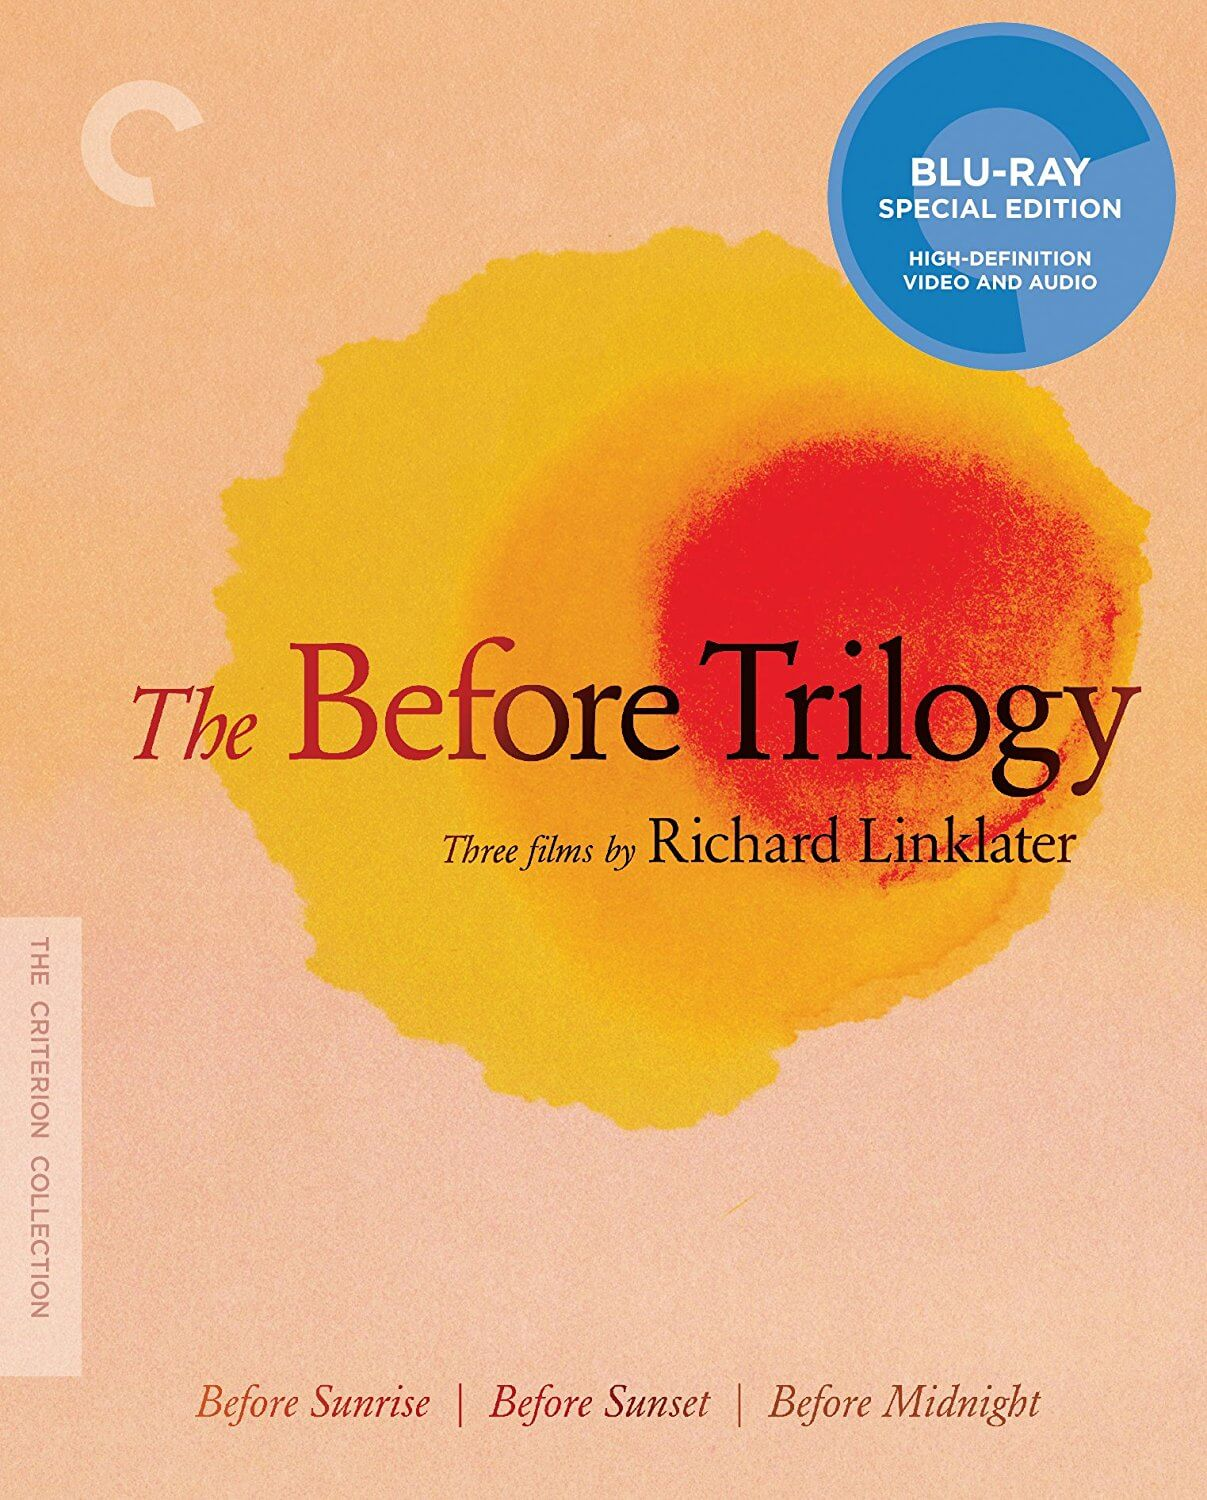 The Before Trilogy - Criterion Bluray Disc